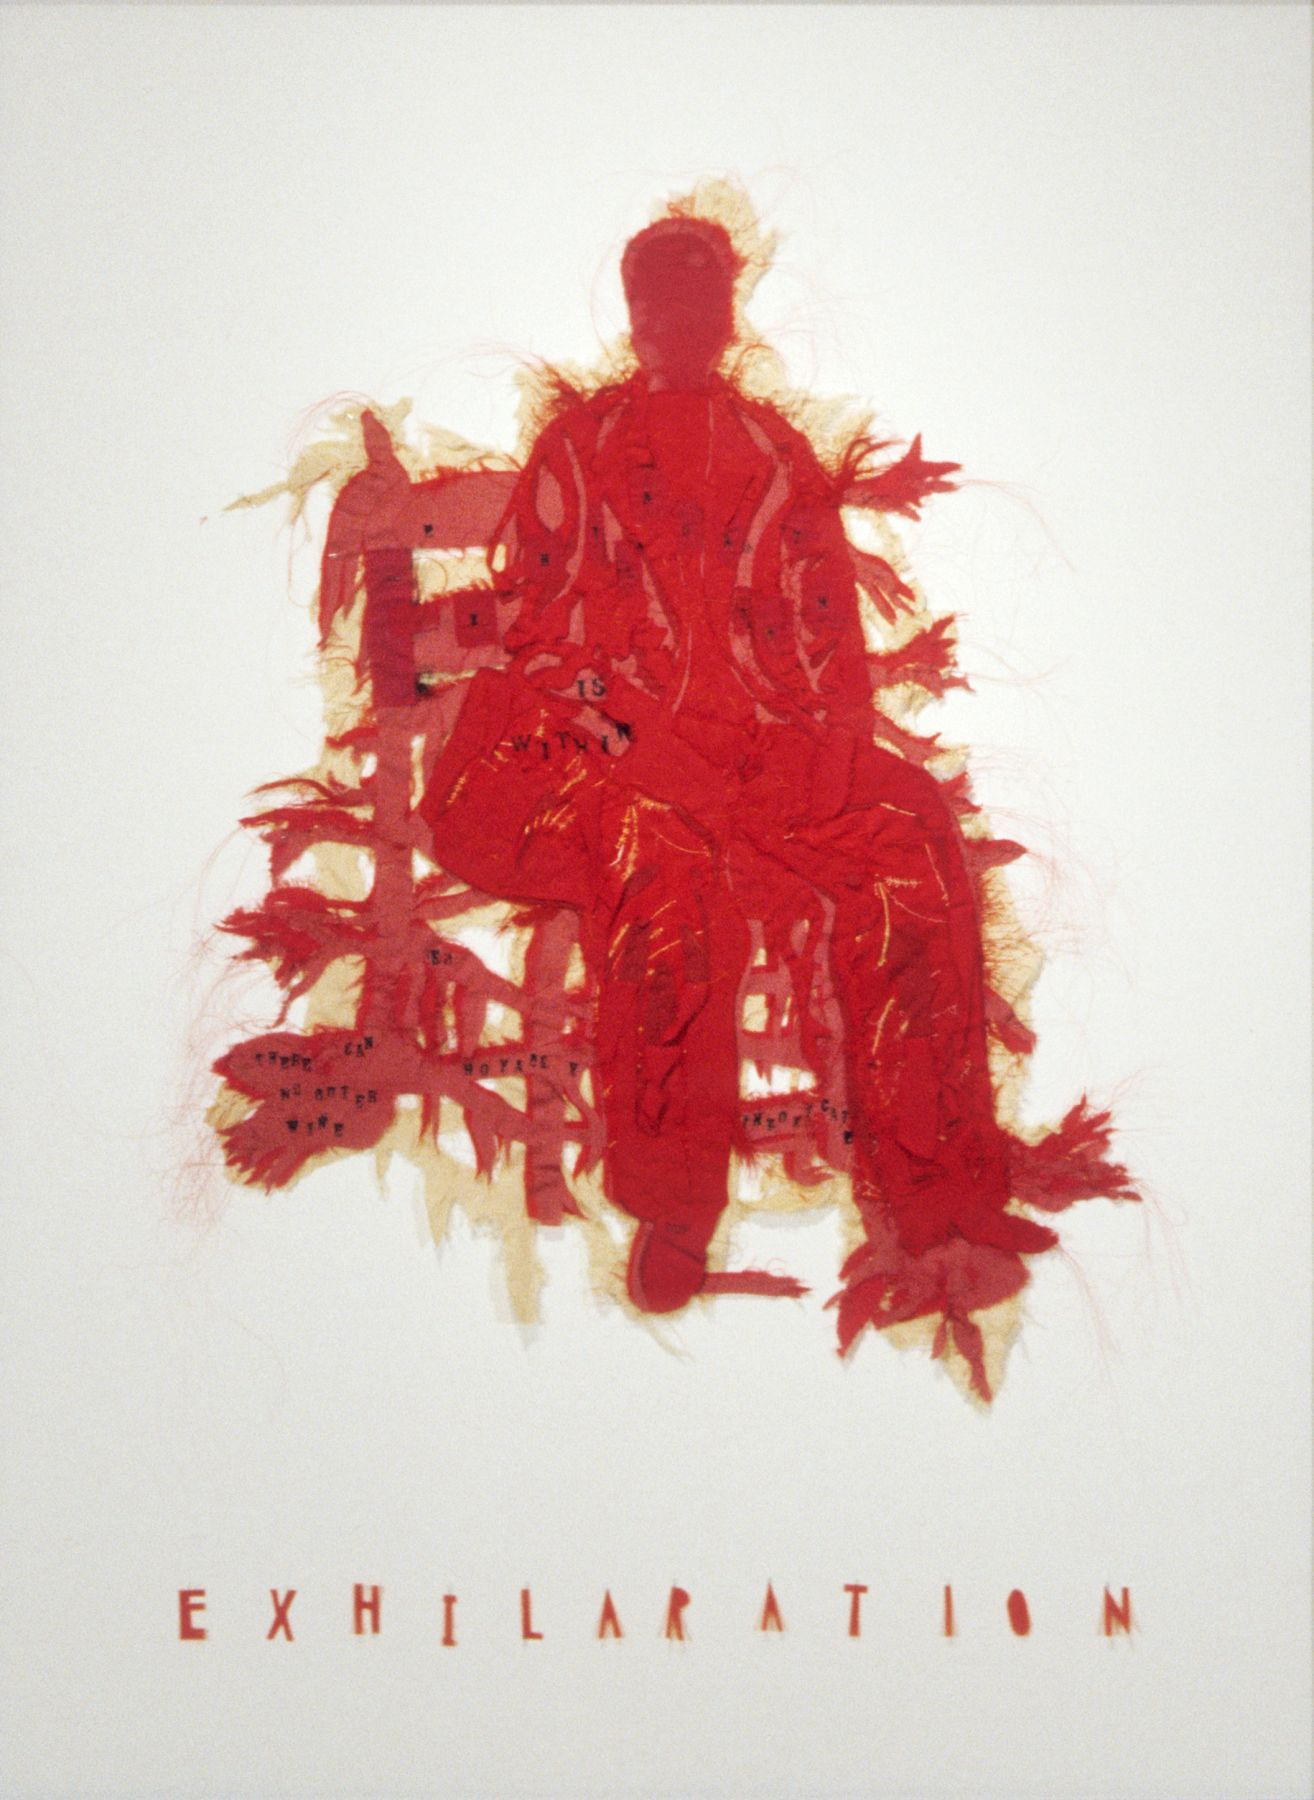 Lesley Dill, Homage to Frida Kahlo (Red Frida), 2004, ink on paper, cotton, silk, polyester, fabric, horsehair, thread, 42 x 30 inches